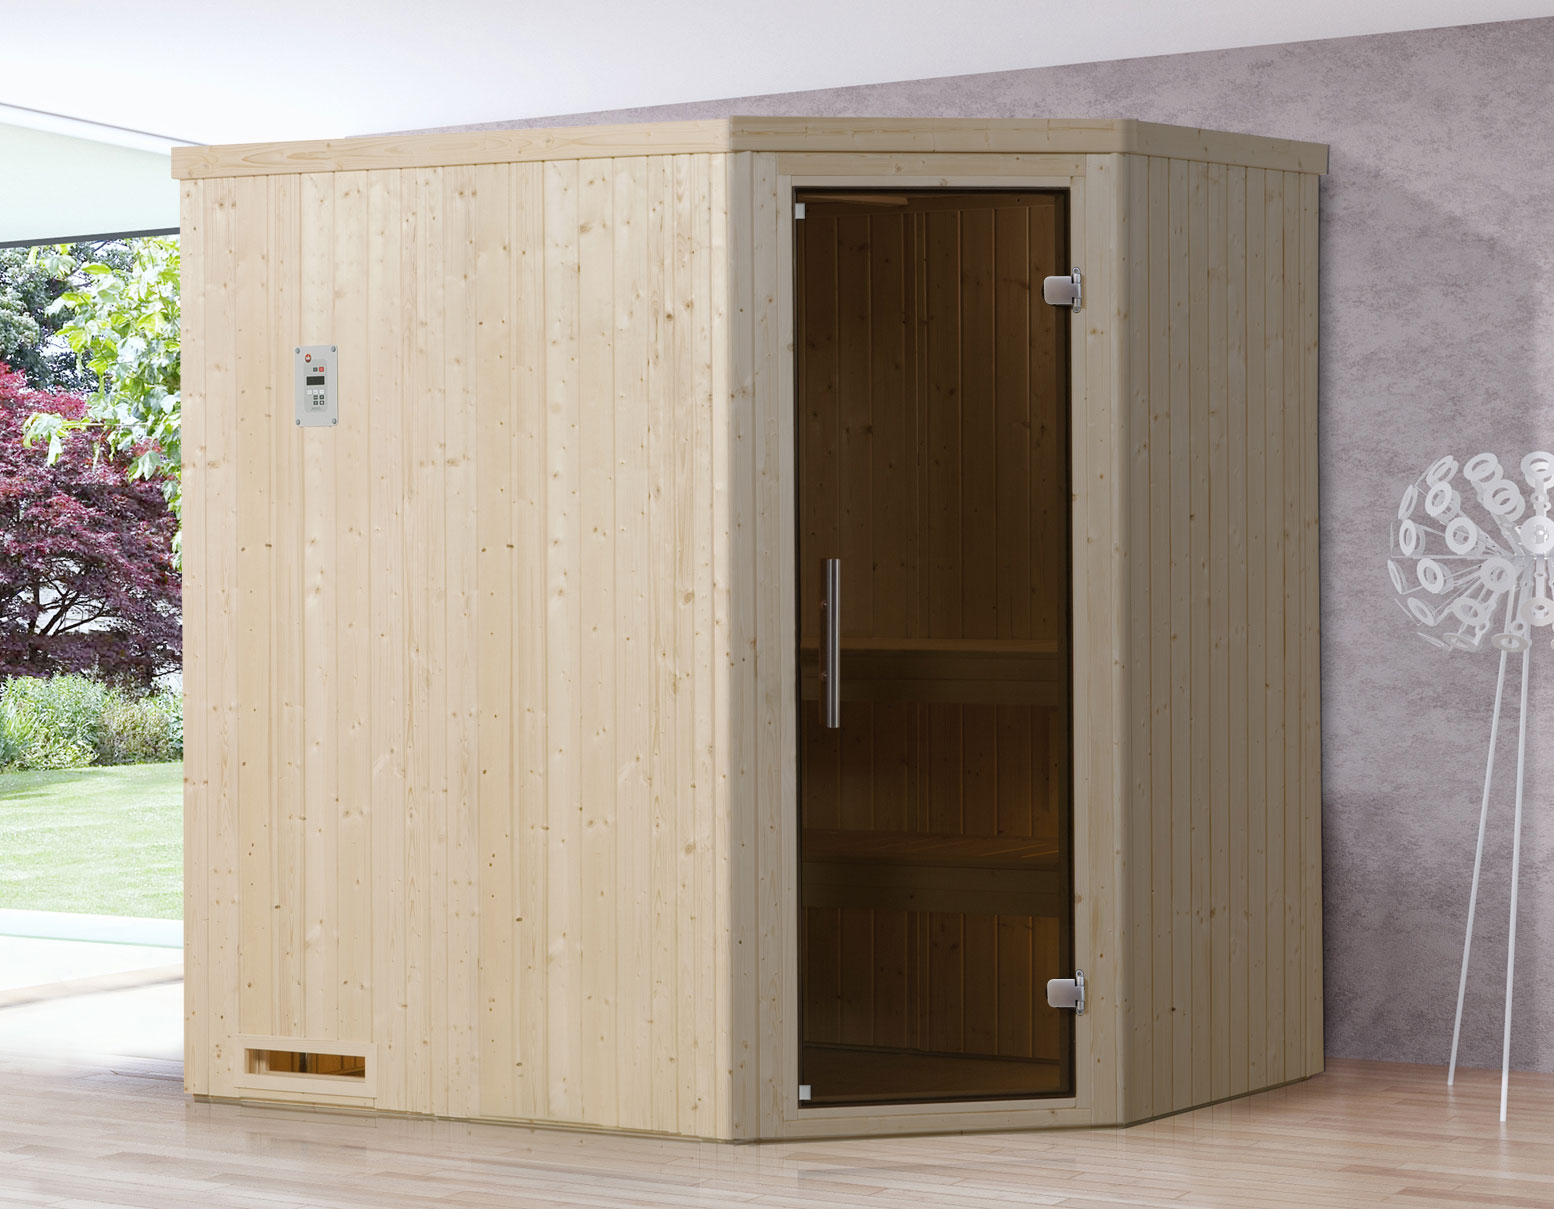 weka sauna 508 gt gr 2 68mm ohne ofen mit glast r bei. Black Bedroom Furniture Sets. Home Design Ideas